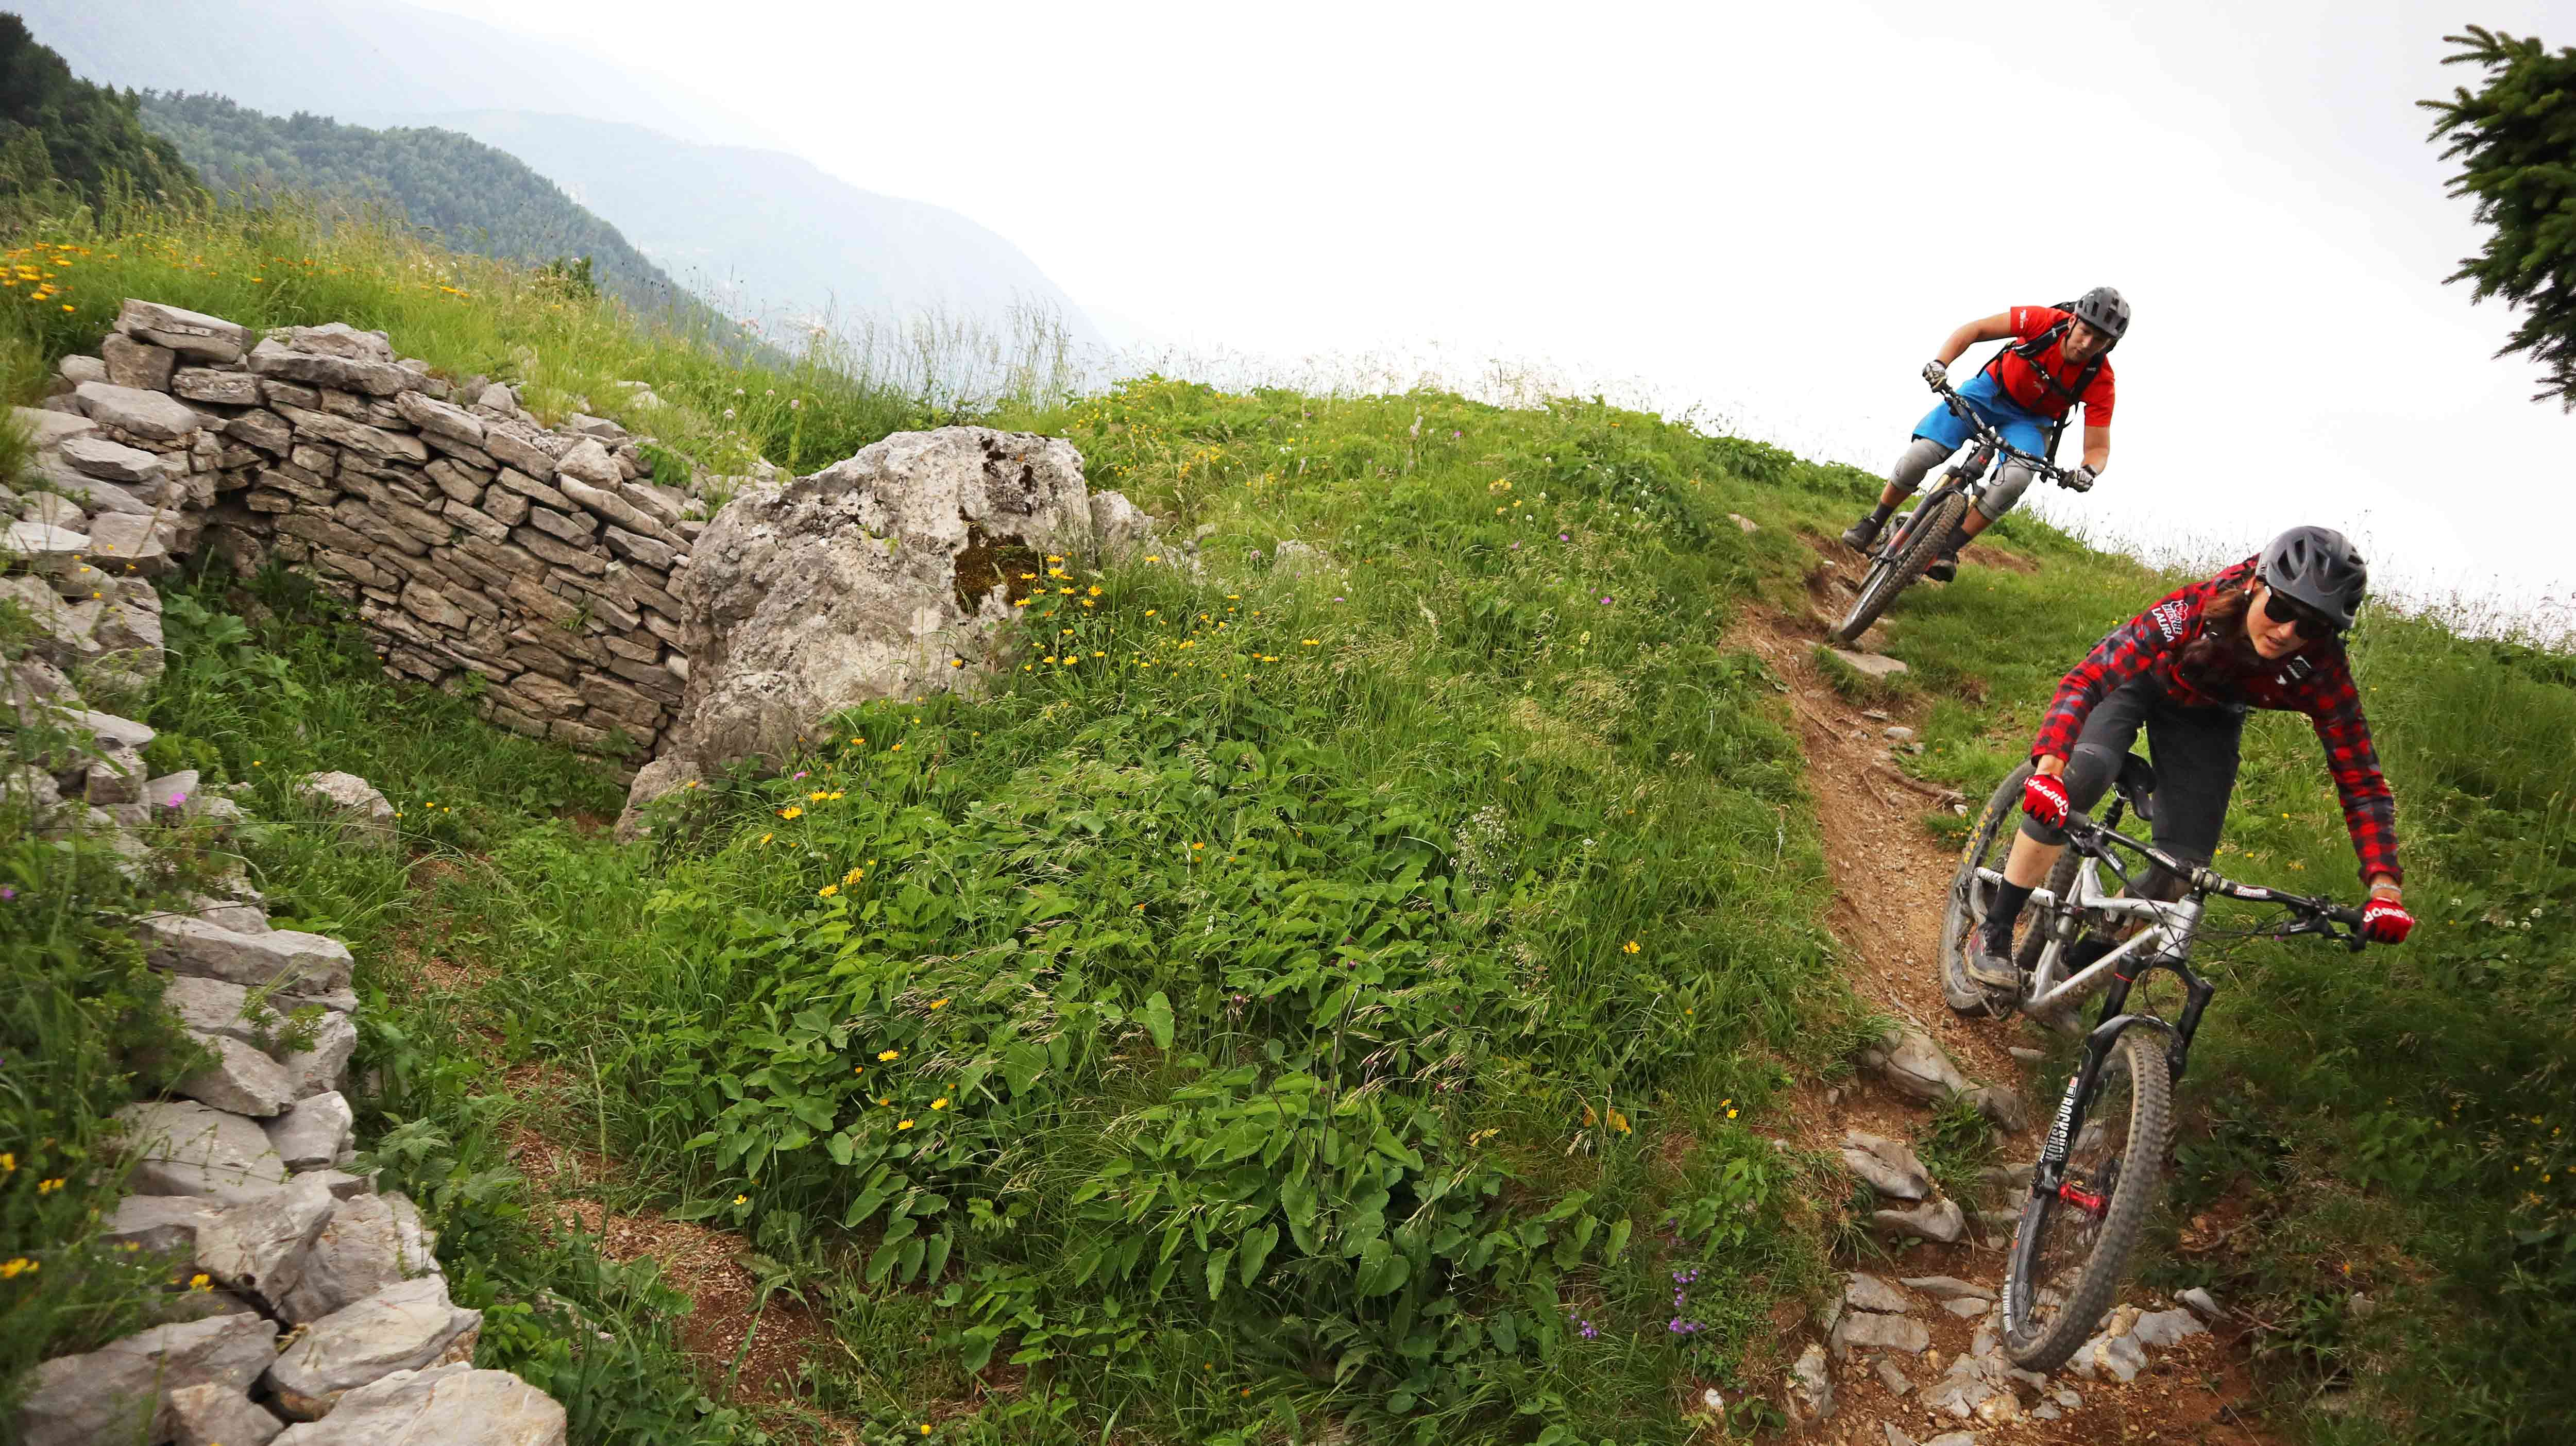 A trail with 2 riders near an old wall in slovenia